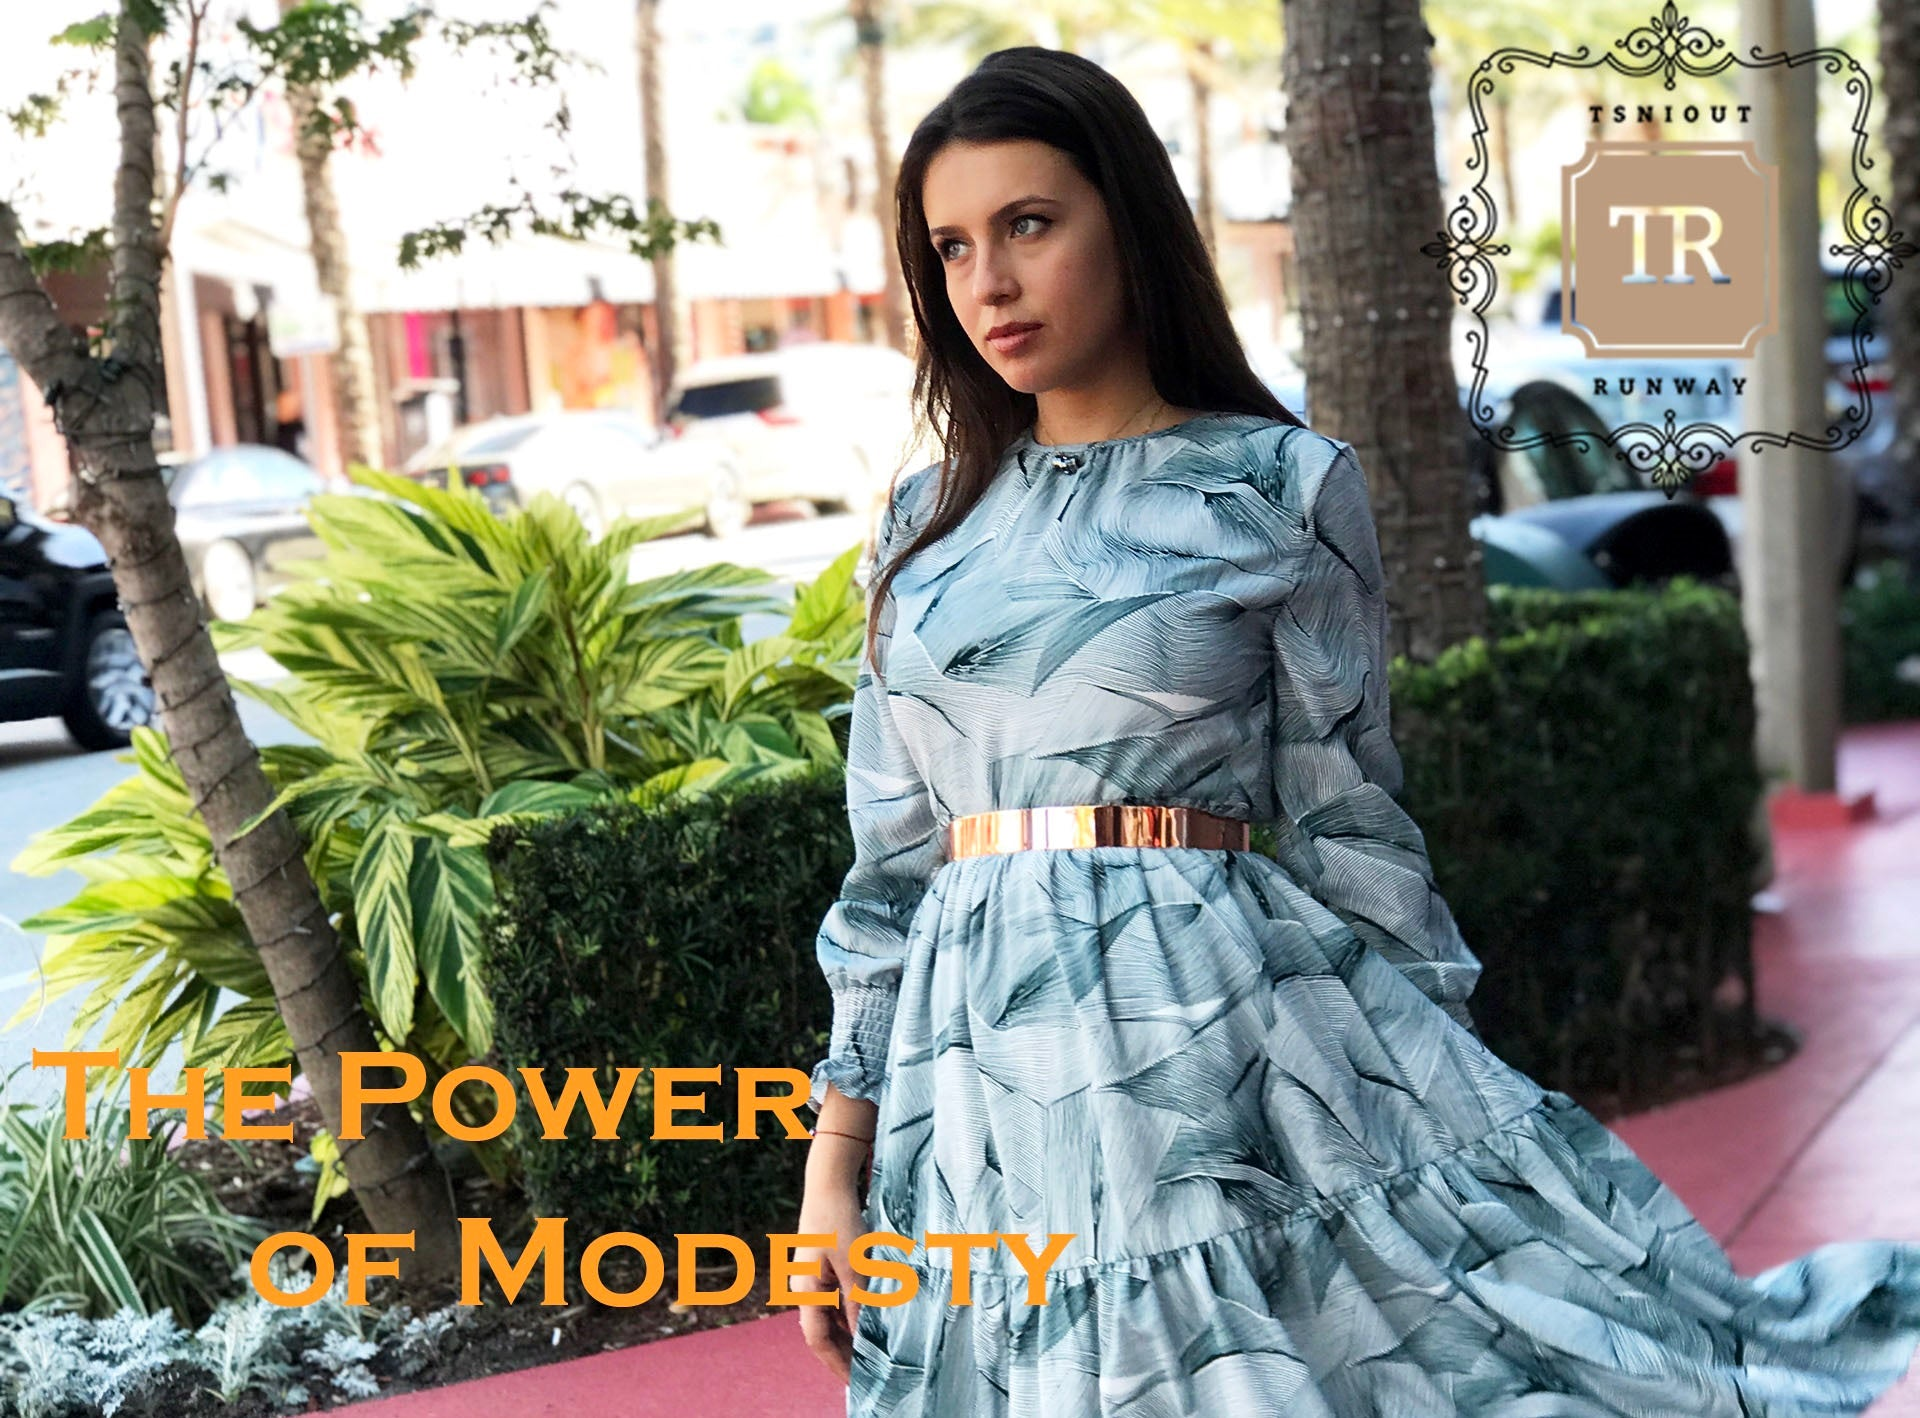 f788f0b7deadf Modest Women's Clothing Store Online, Tznius Clothing Miami - TRrunway